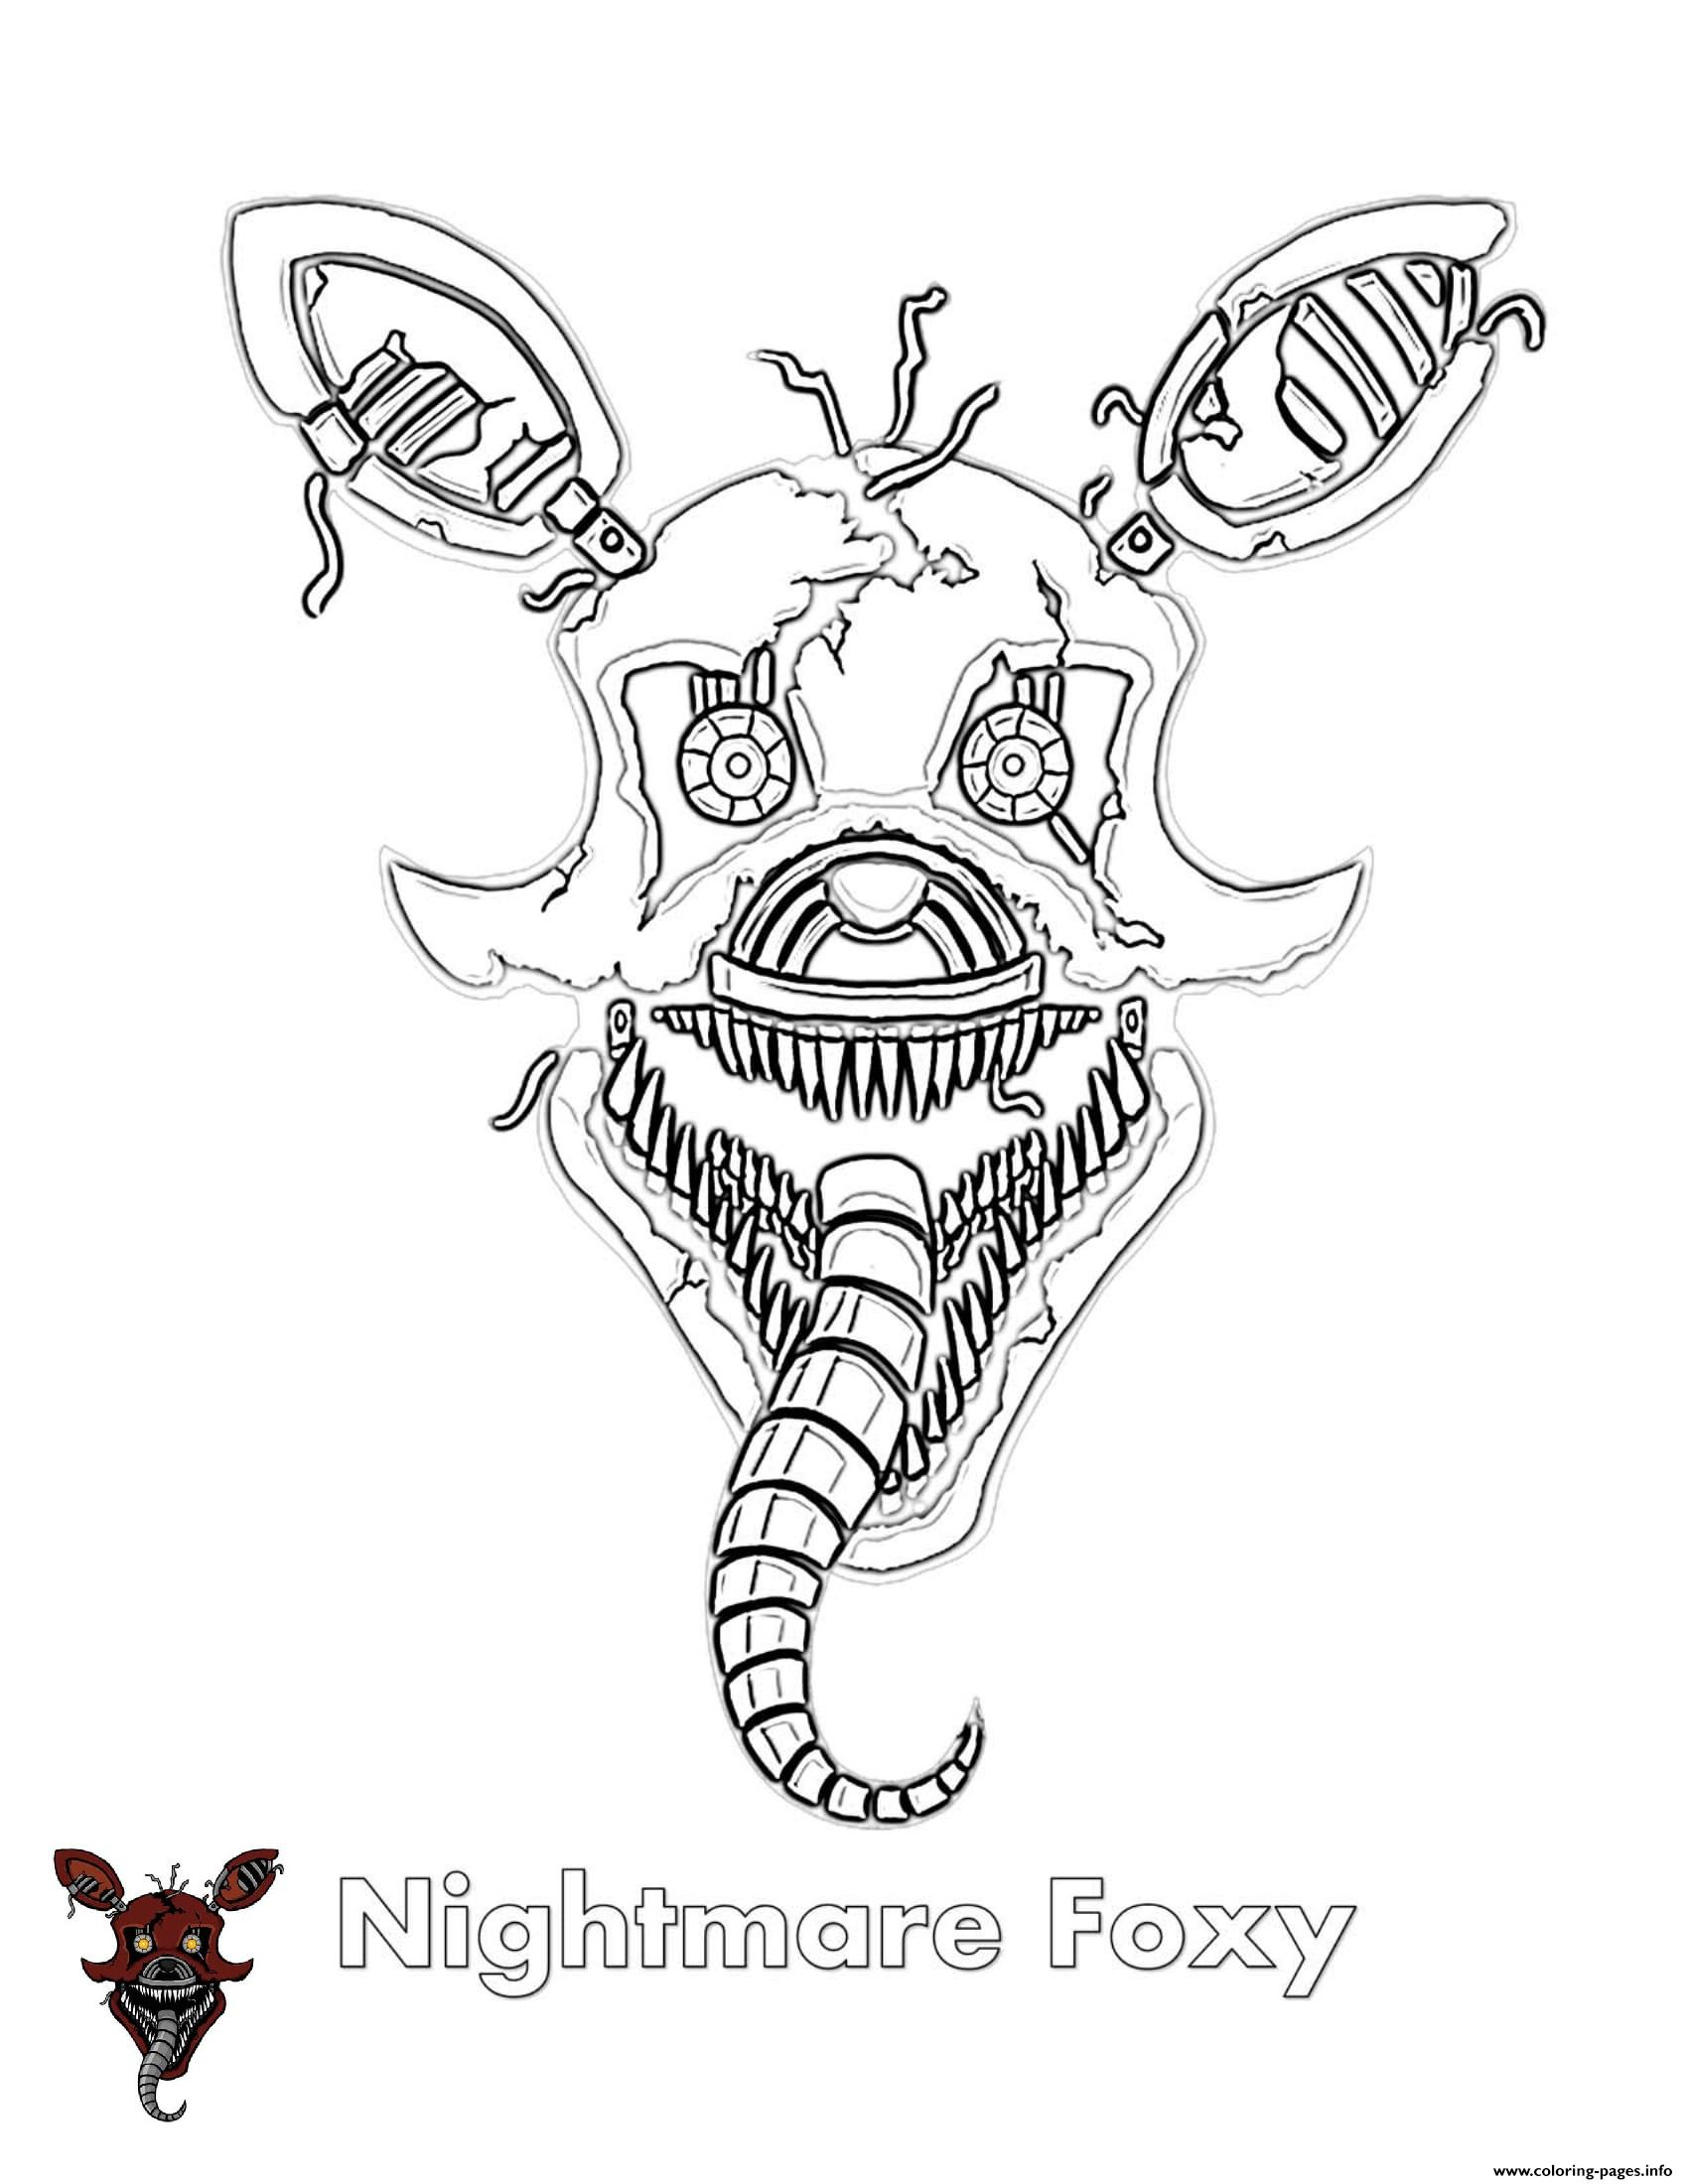 photograph relating to Fnaf Coloring Pages Printable titled Nightmare Cunning FNAF Coloring Internet pages Printable